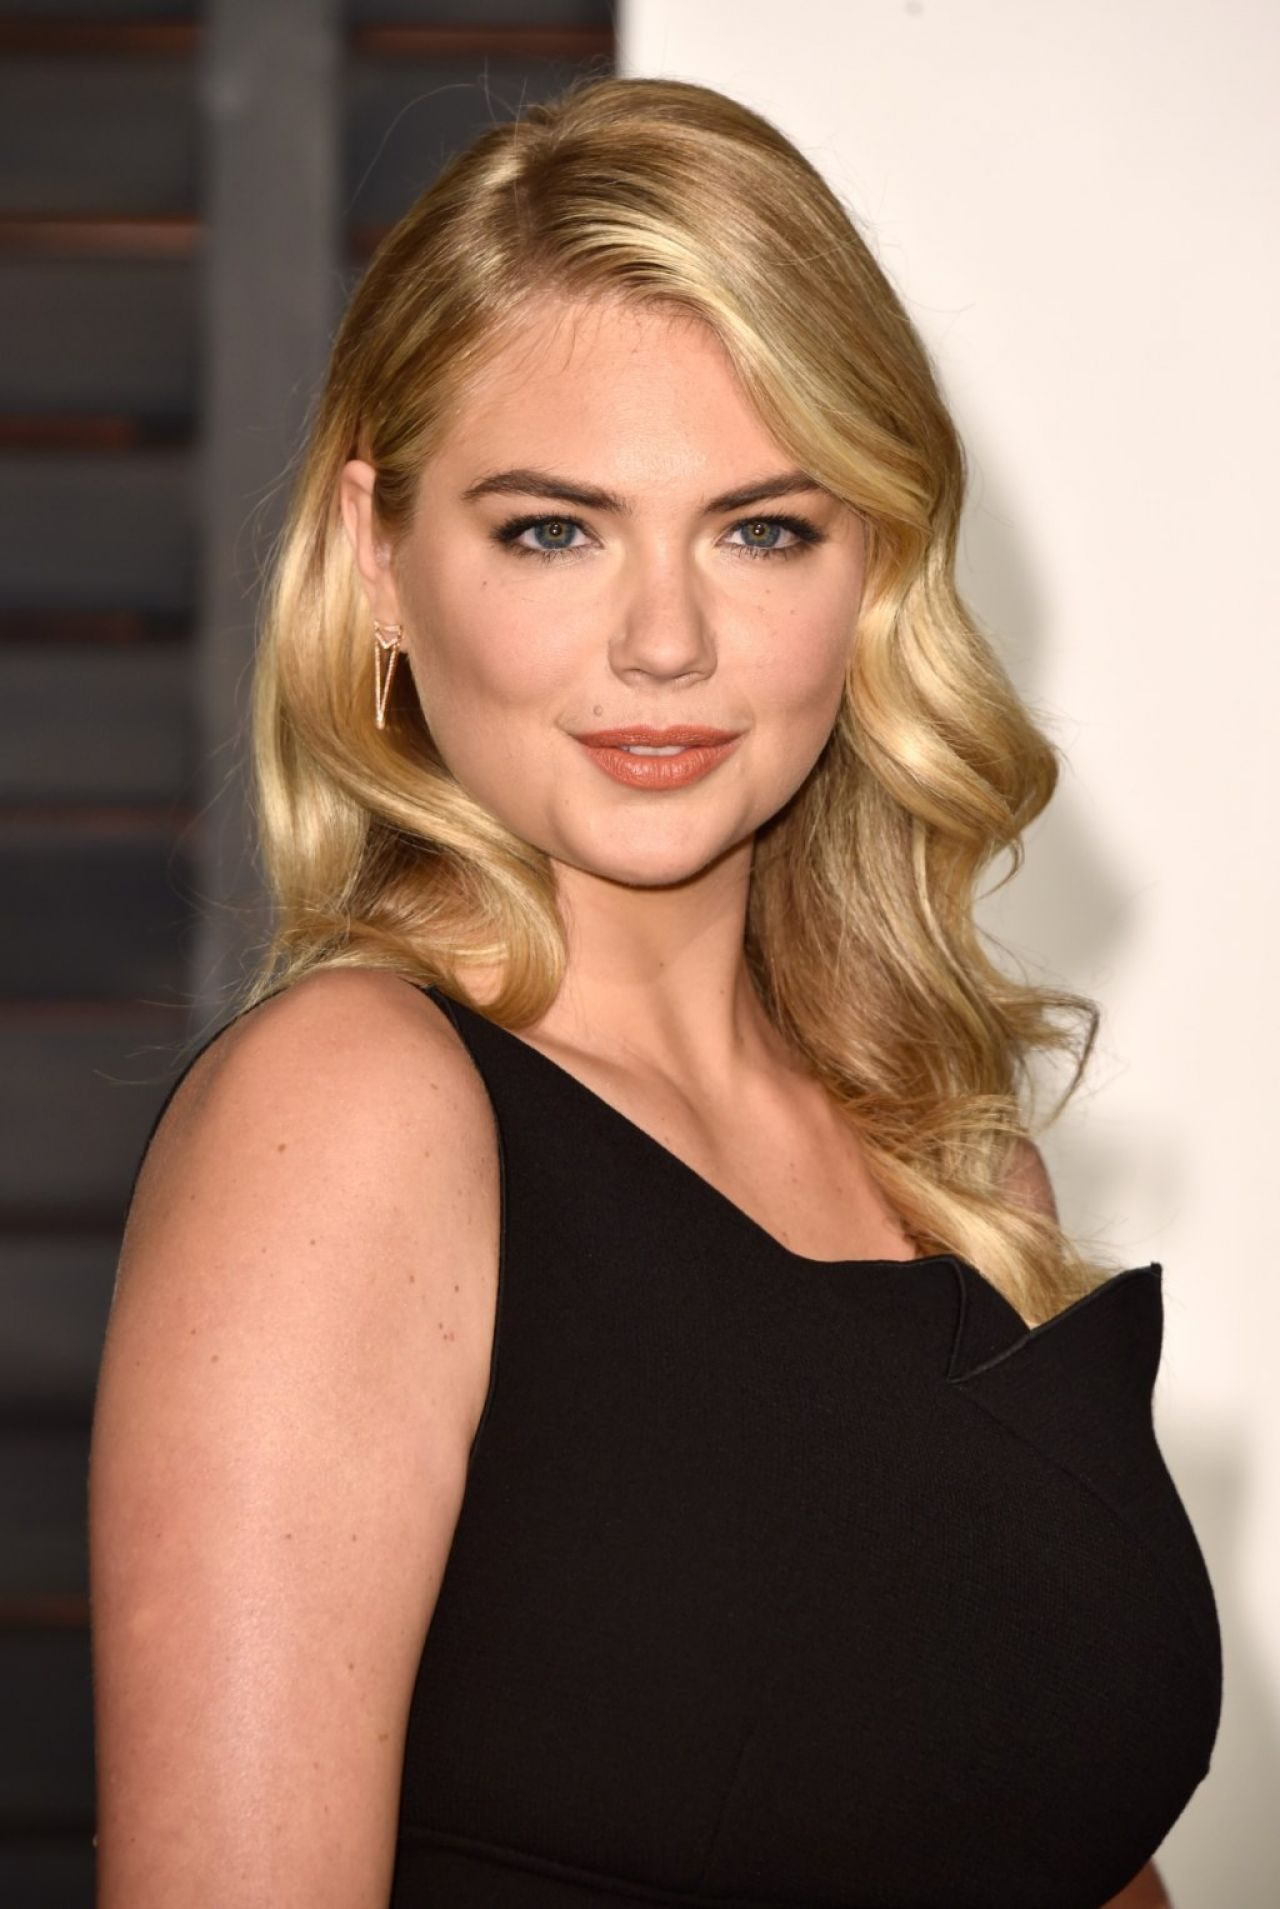 Kate Upton - 2015 Vanity Fair Oscar Party in Hollywood